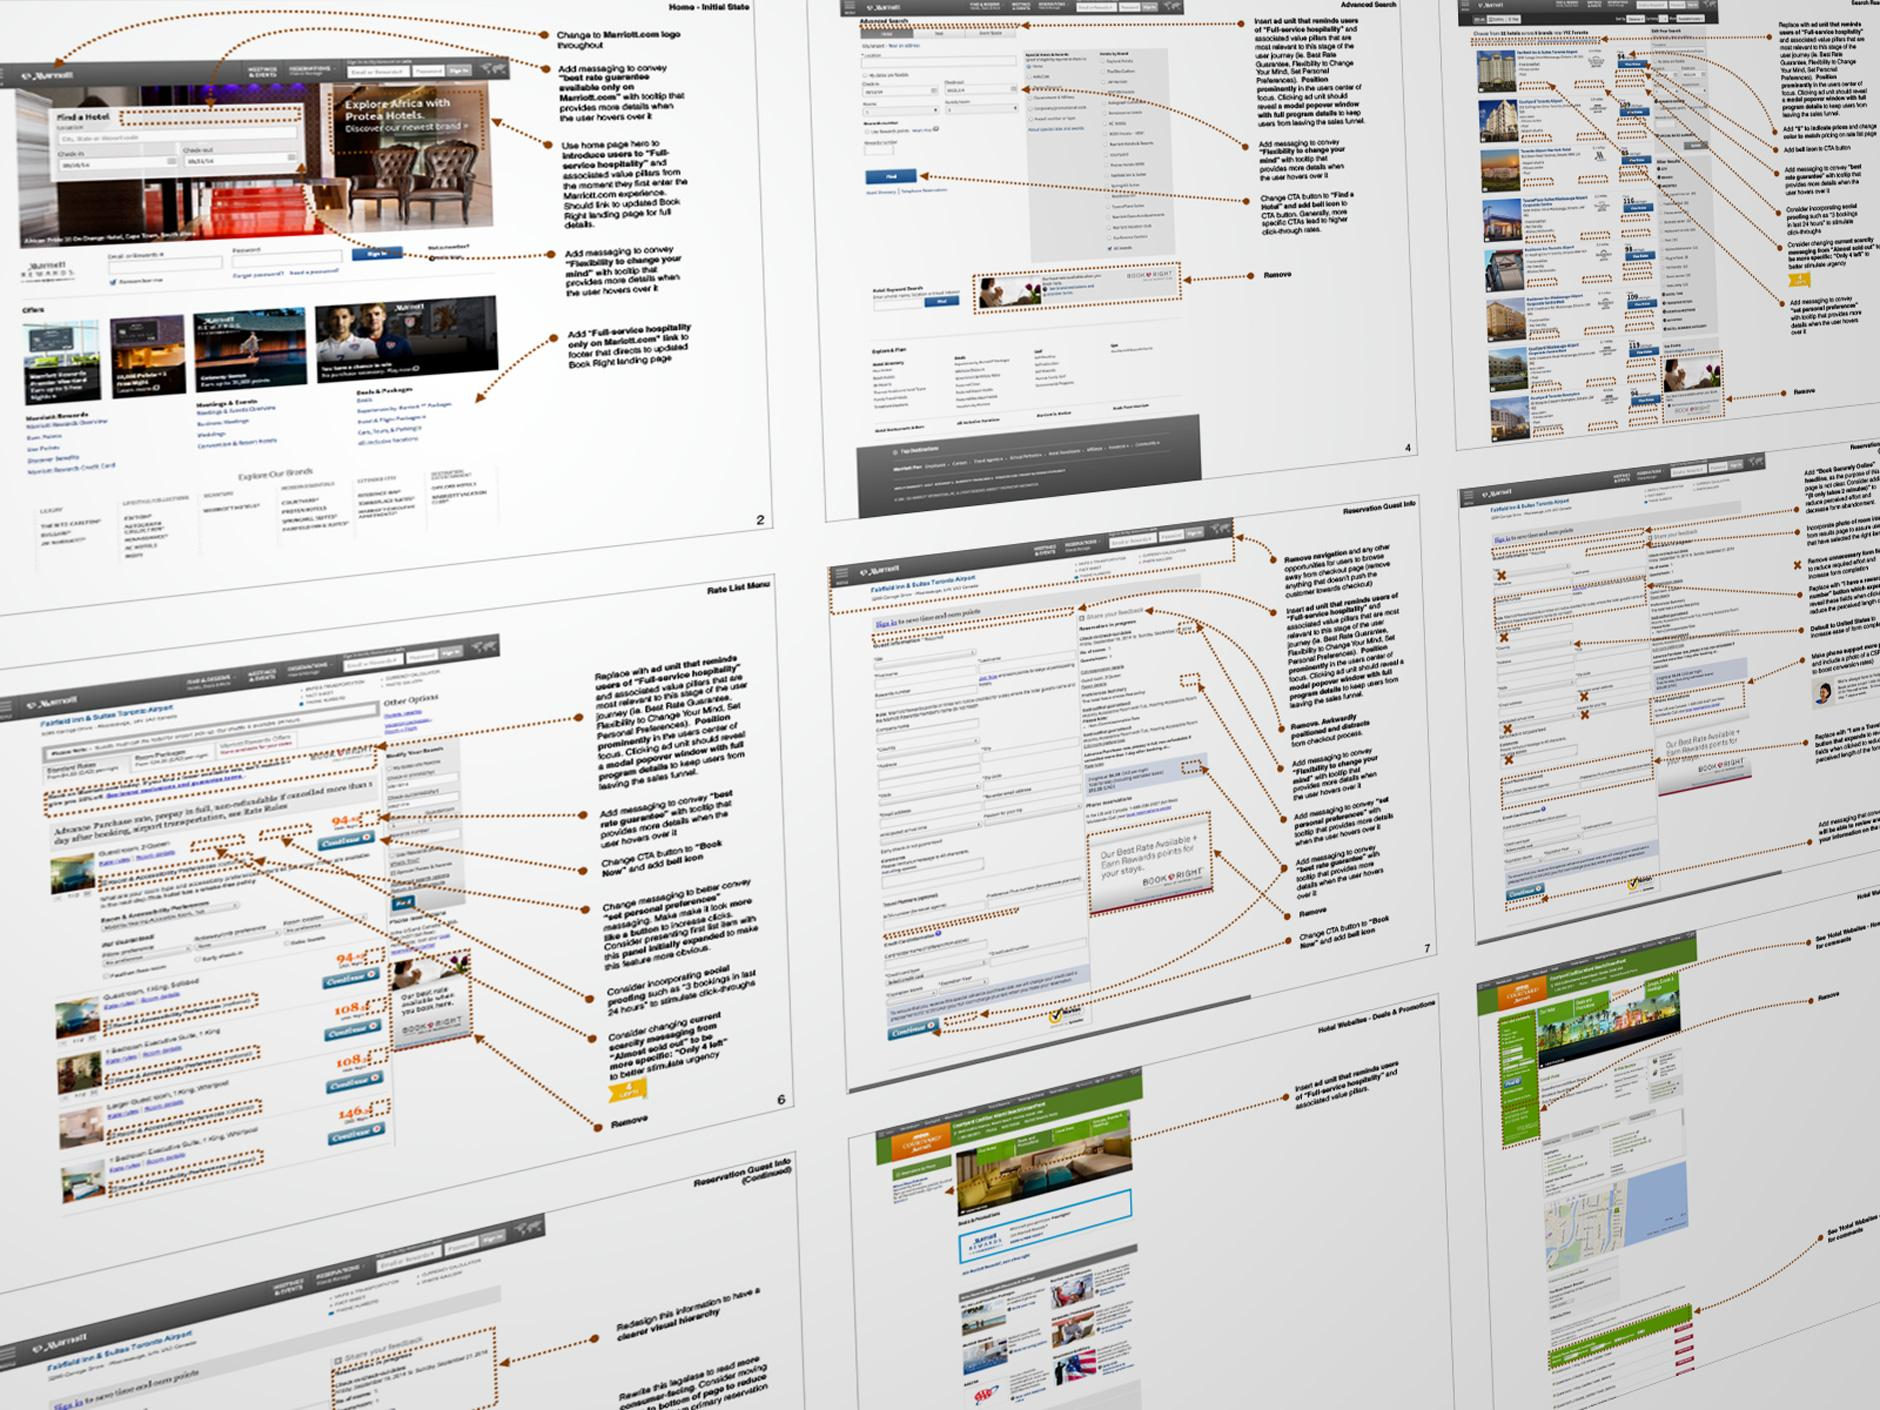 ux data analysis and ux audit of website